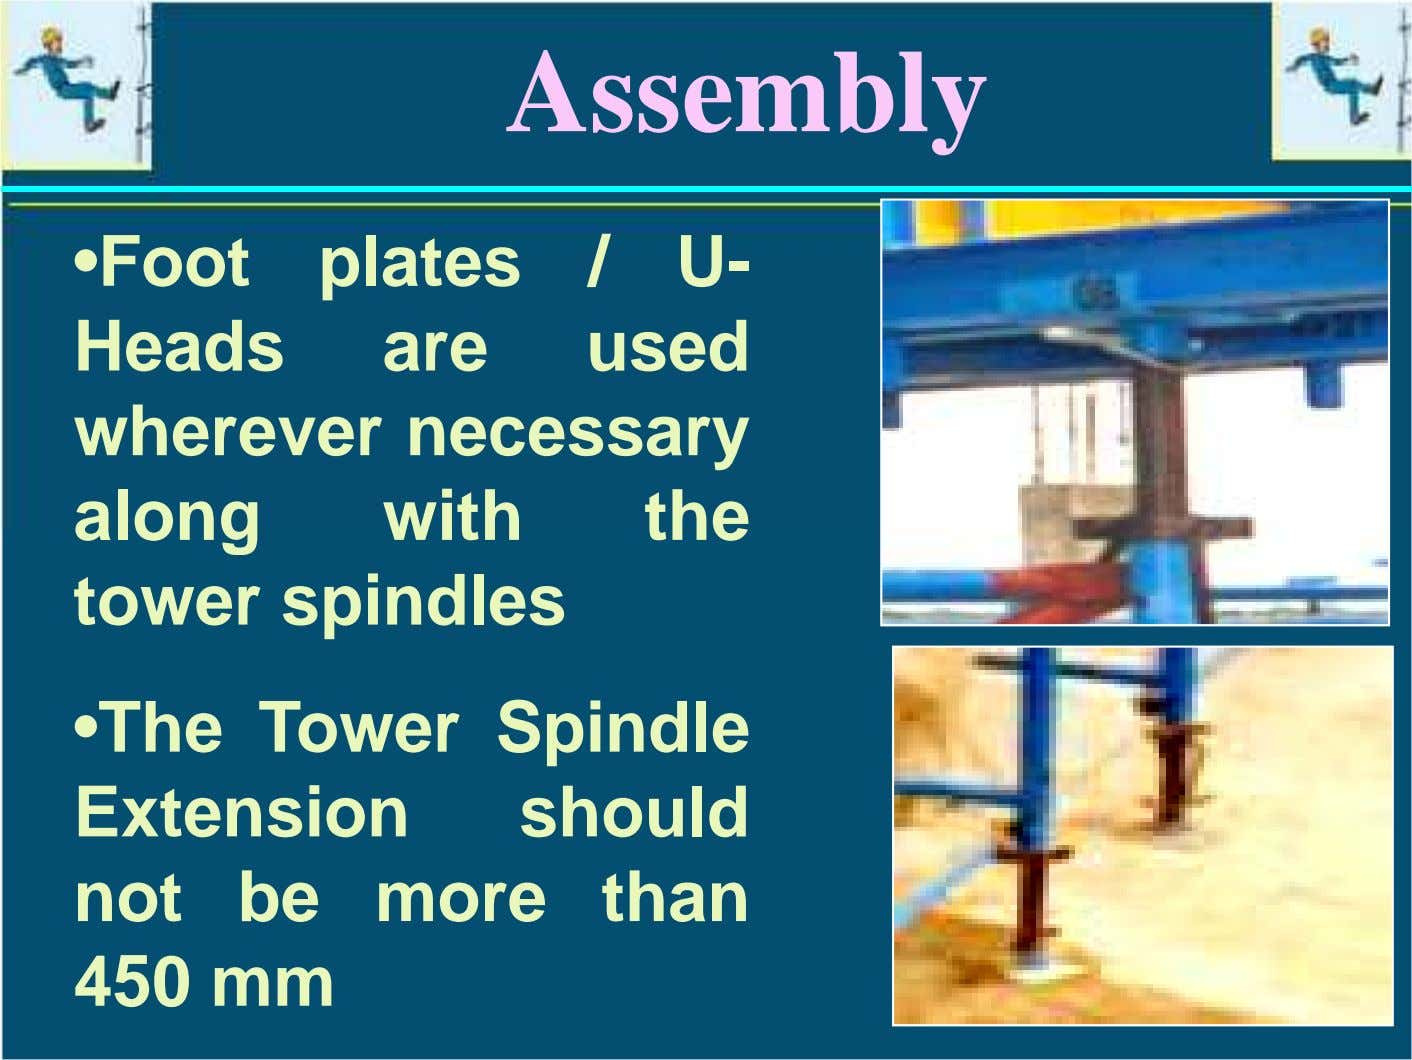 Assembly •Foot plates / U- Heads are used wherever necessary along with the tower spindles